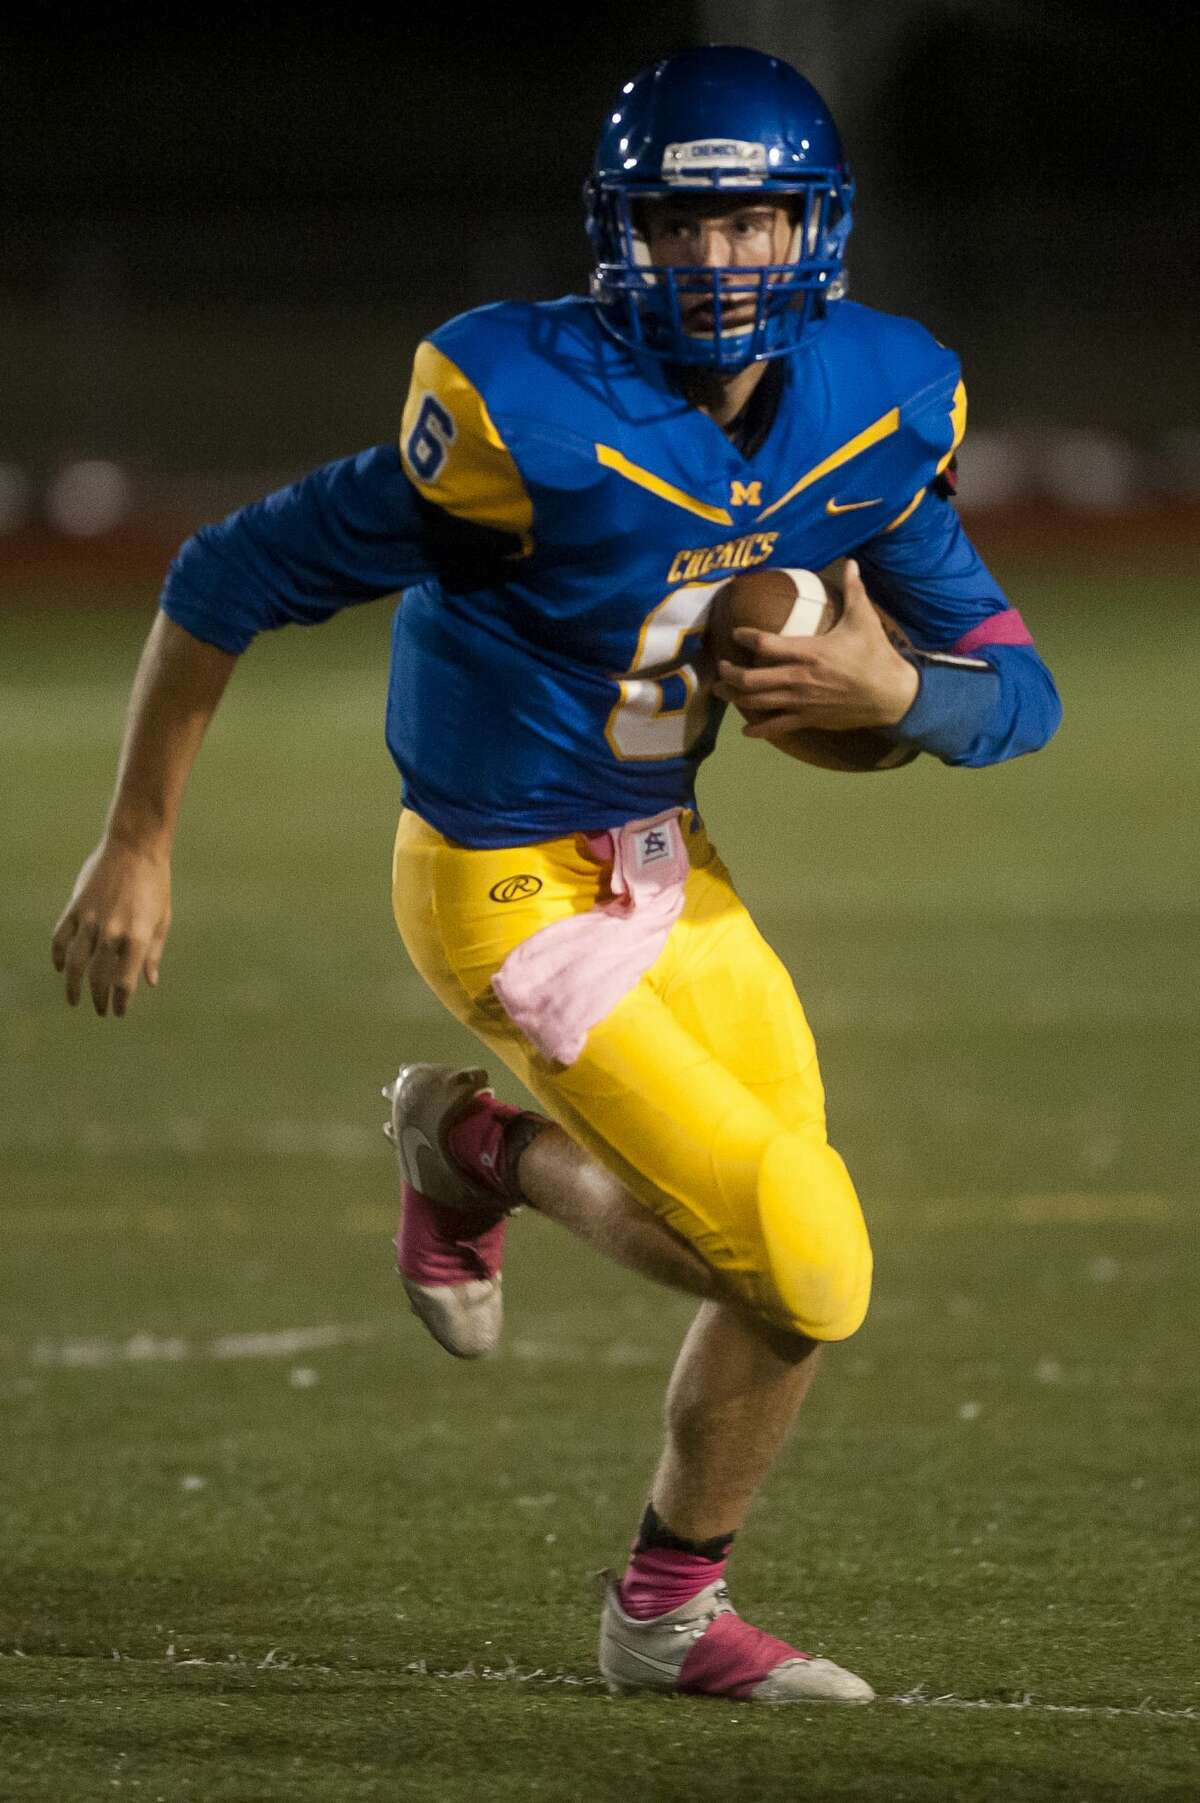 Midland senior Cad Methner carries the ball down the field during their game against Lapeer on Friday, Oct. 13, 2017 at Midland Community Stadium. (Katy Kildee/kkildee@mdn.net)